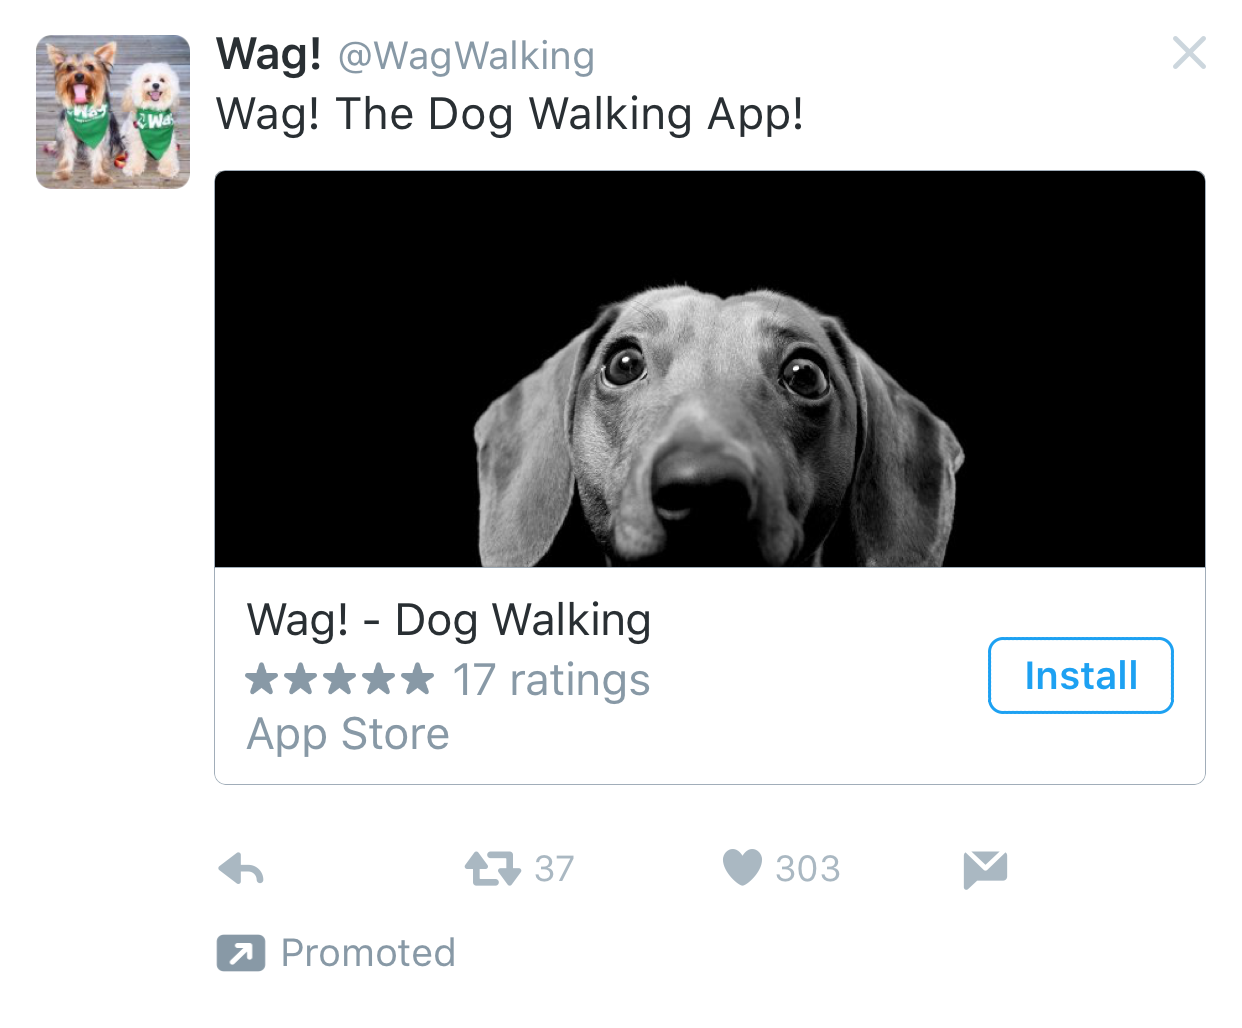 Wag dog walking twitter app install ad example Twitter